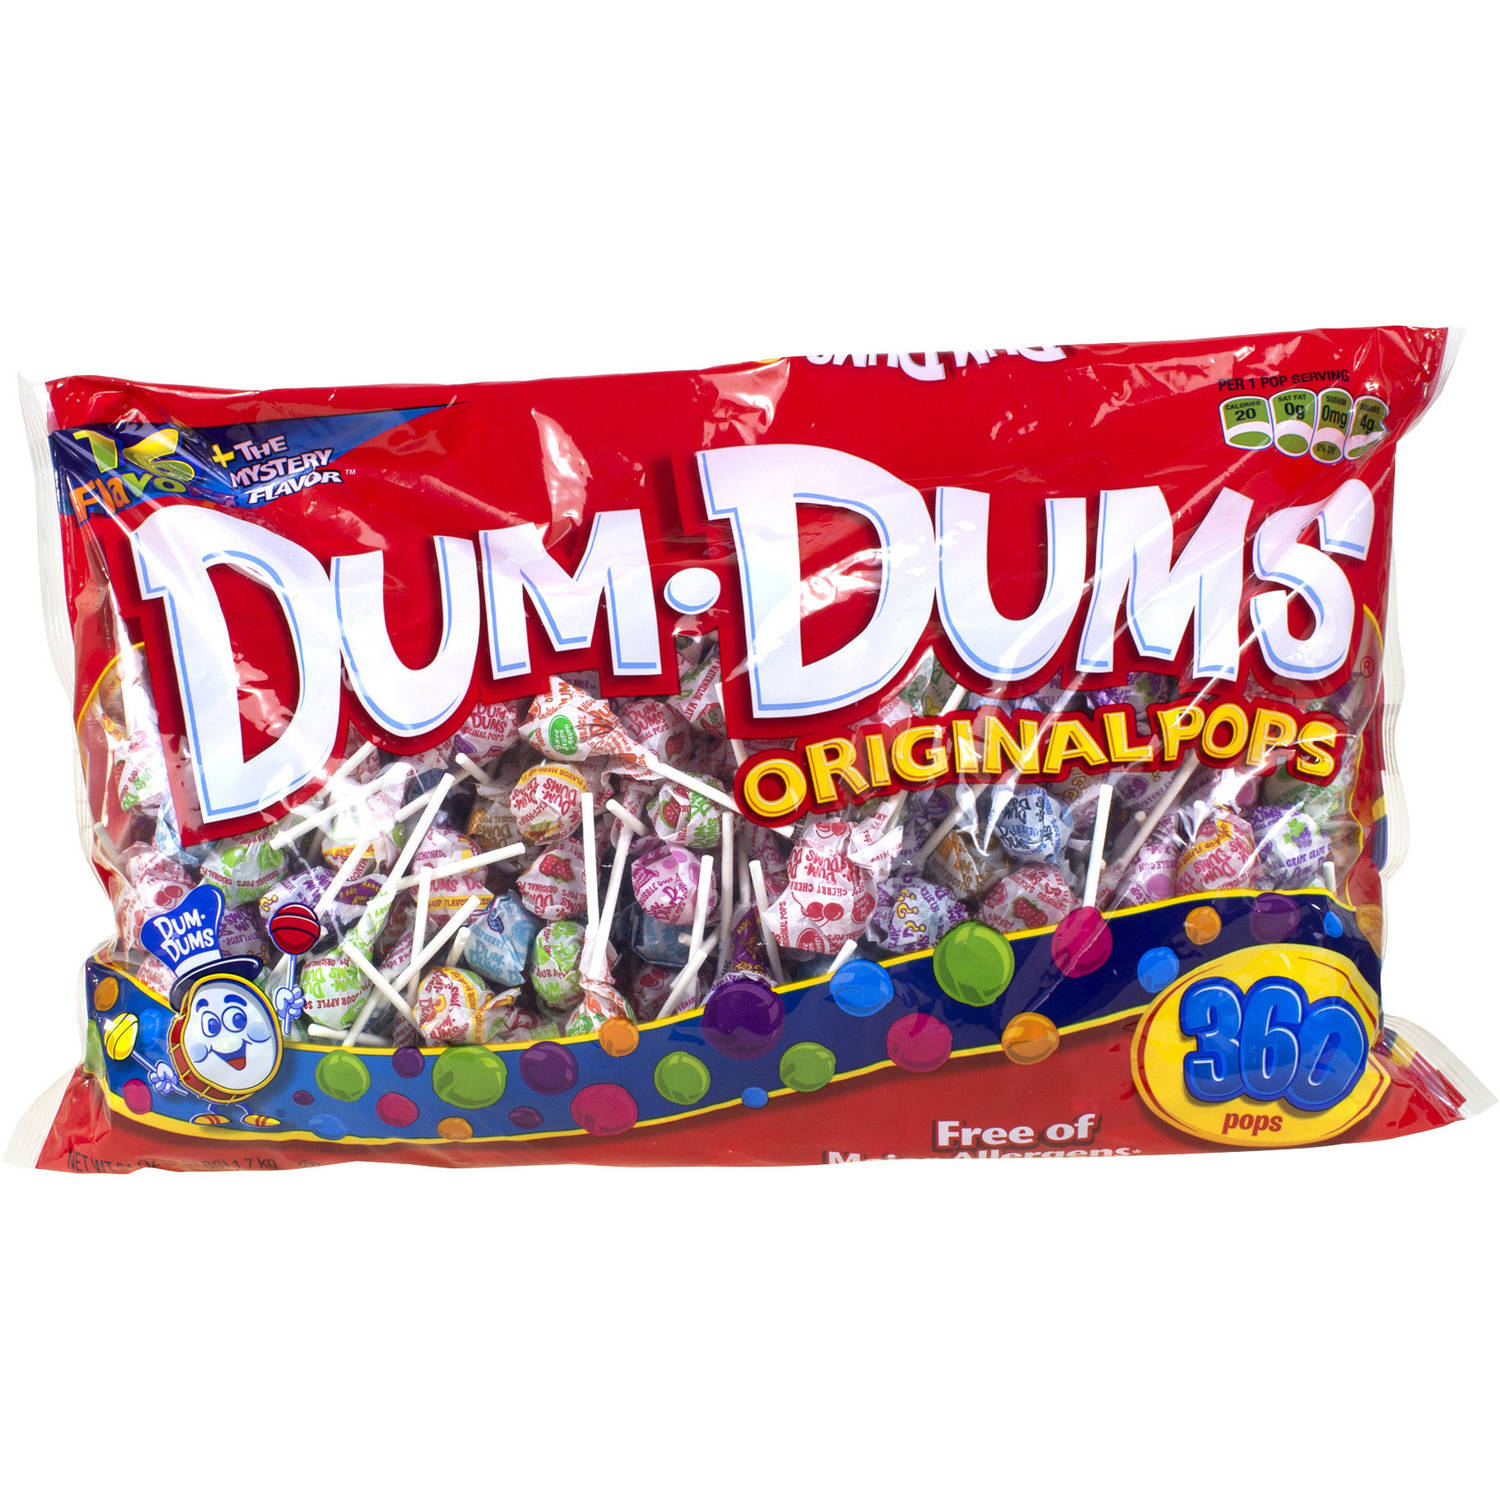 Dum Dums Original Pops Lollipops, 360 count, 3.81 lbs by Spangler Candy Company